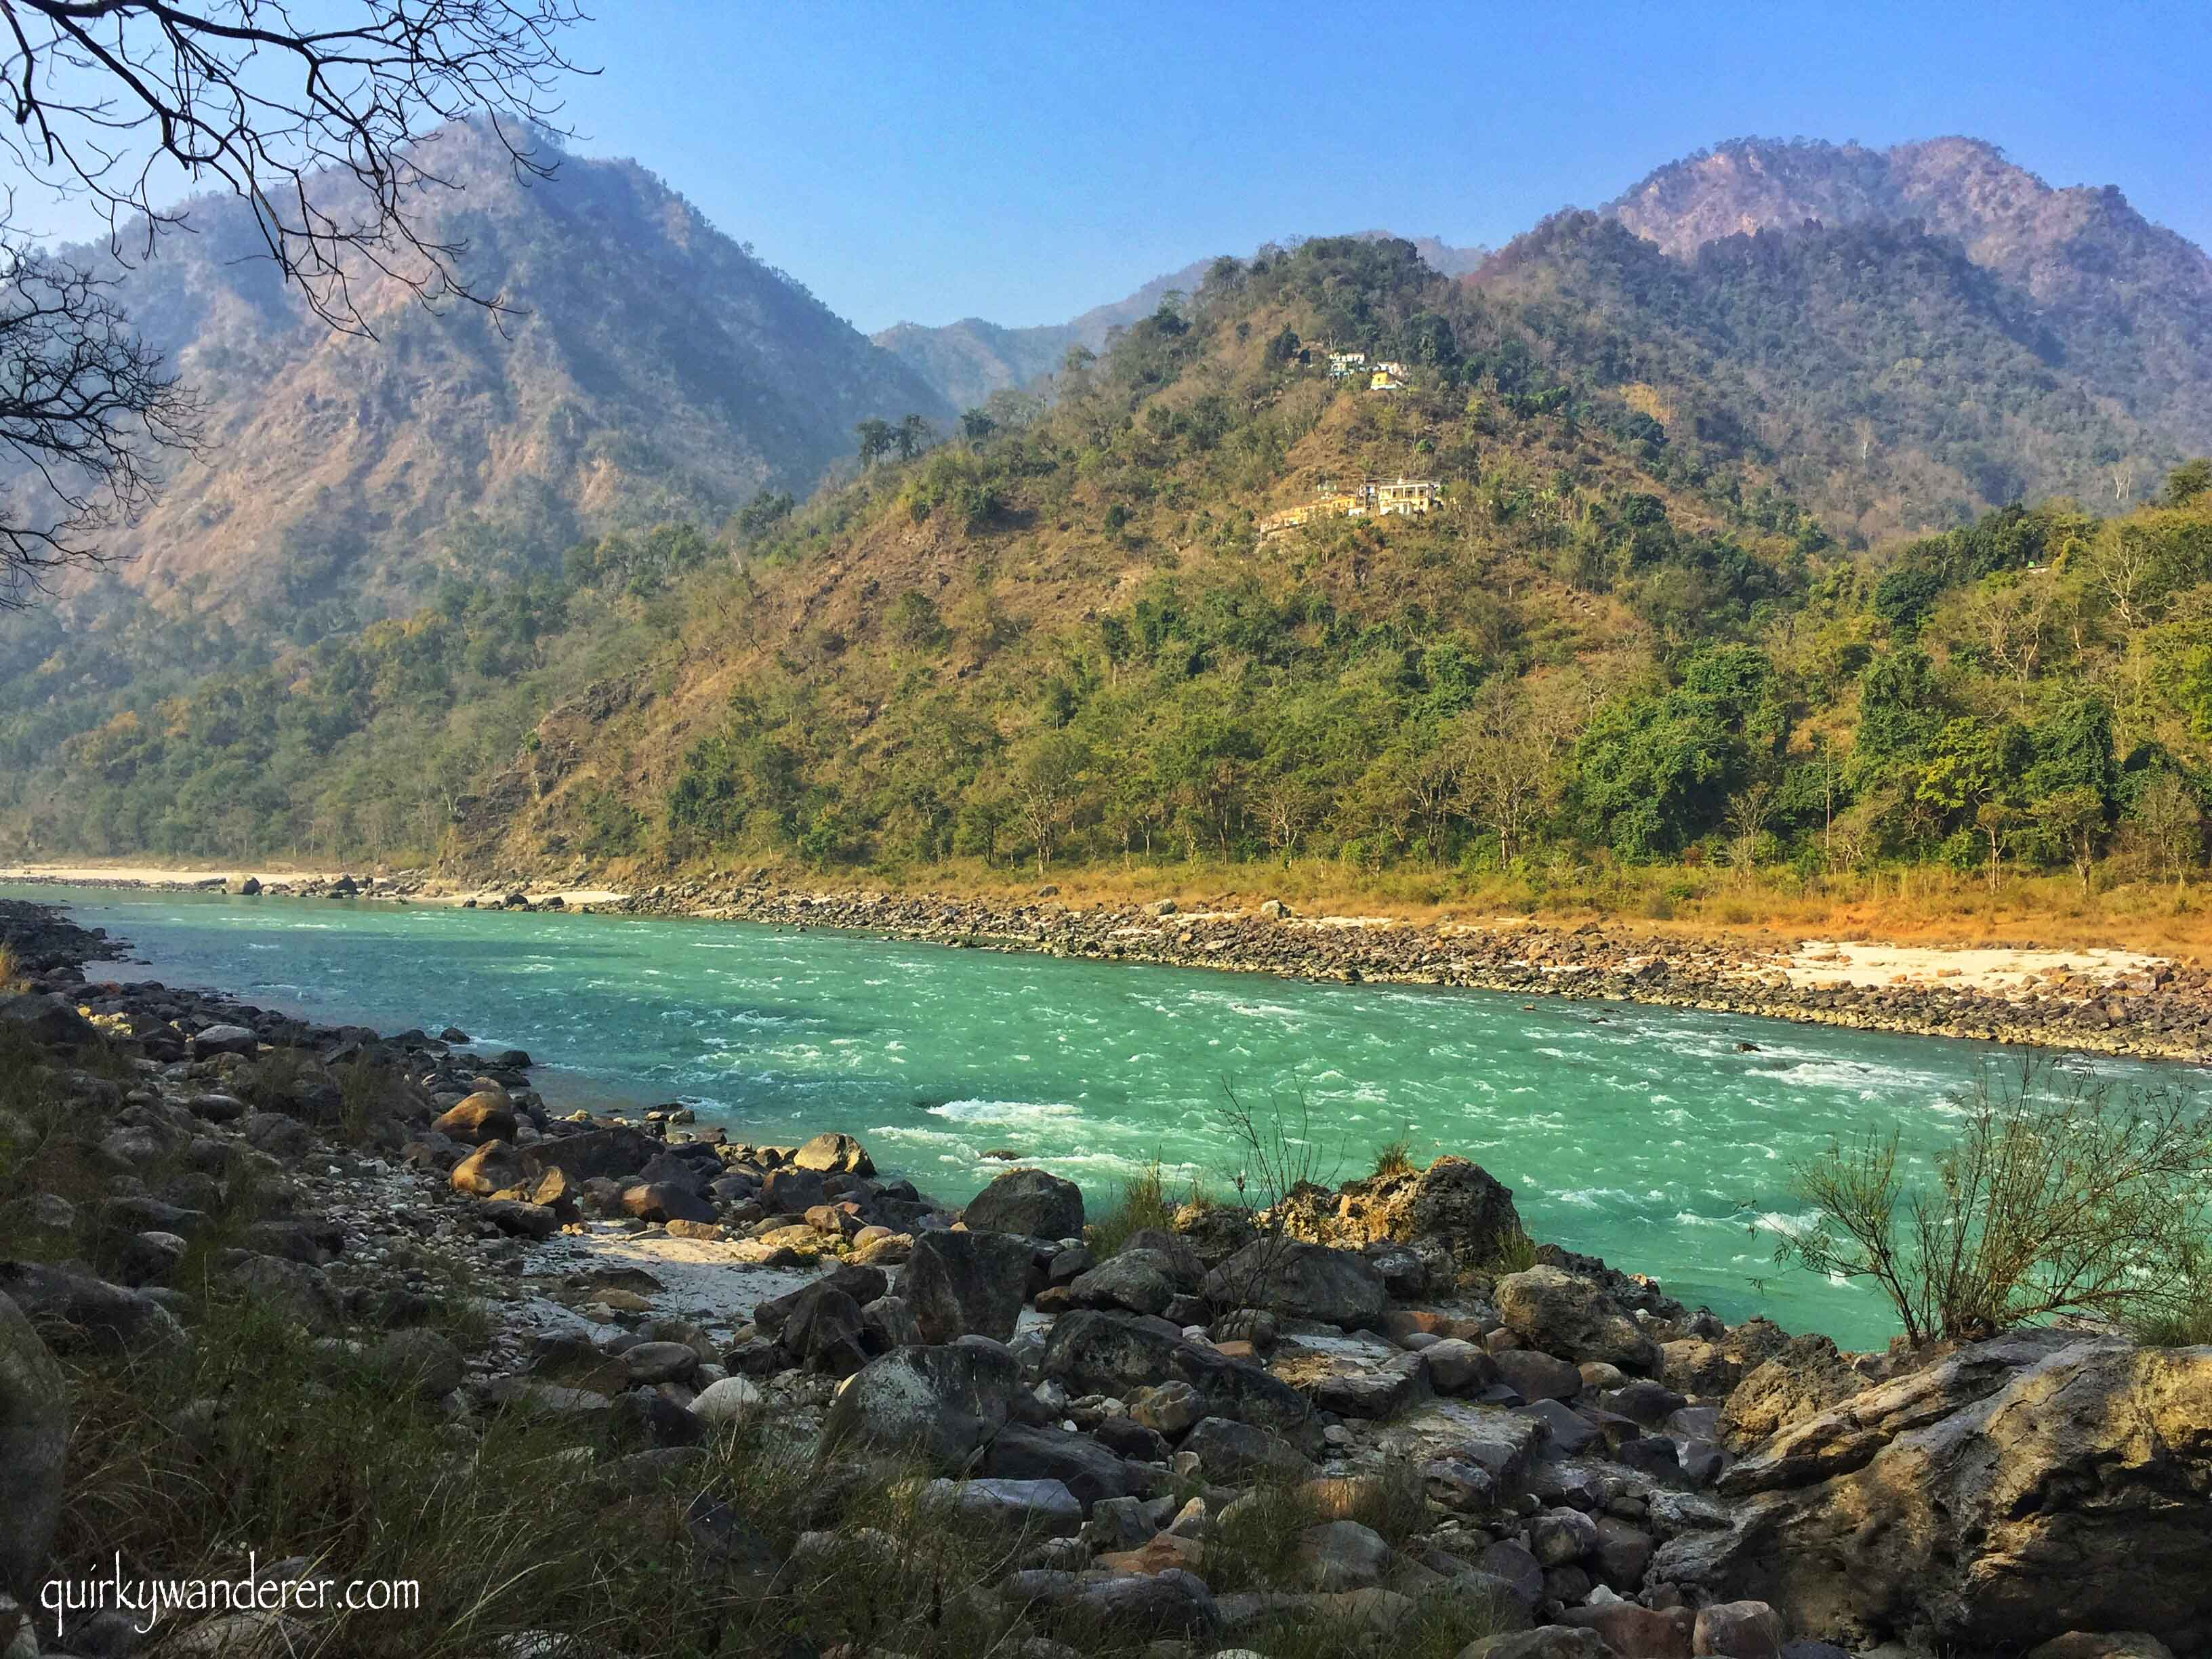 Where can you find the Ganga in its purest forms? Come along with me as I spend time with the pristine Ganga conversing with it at the Glasshouse on the Ganges a Neemrana property off Rishikesh.